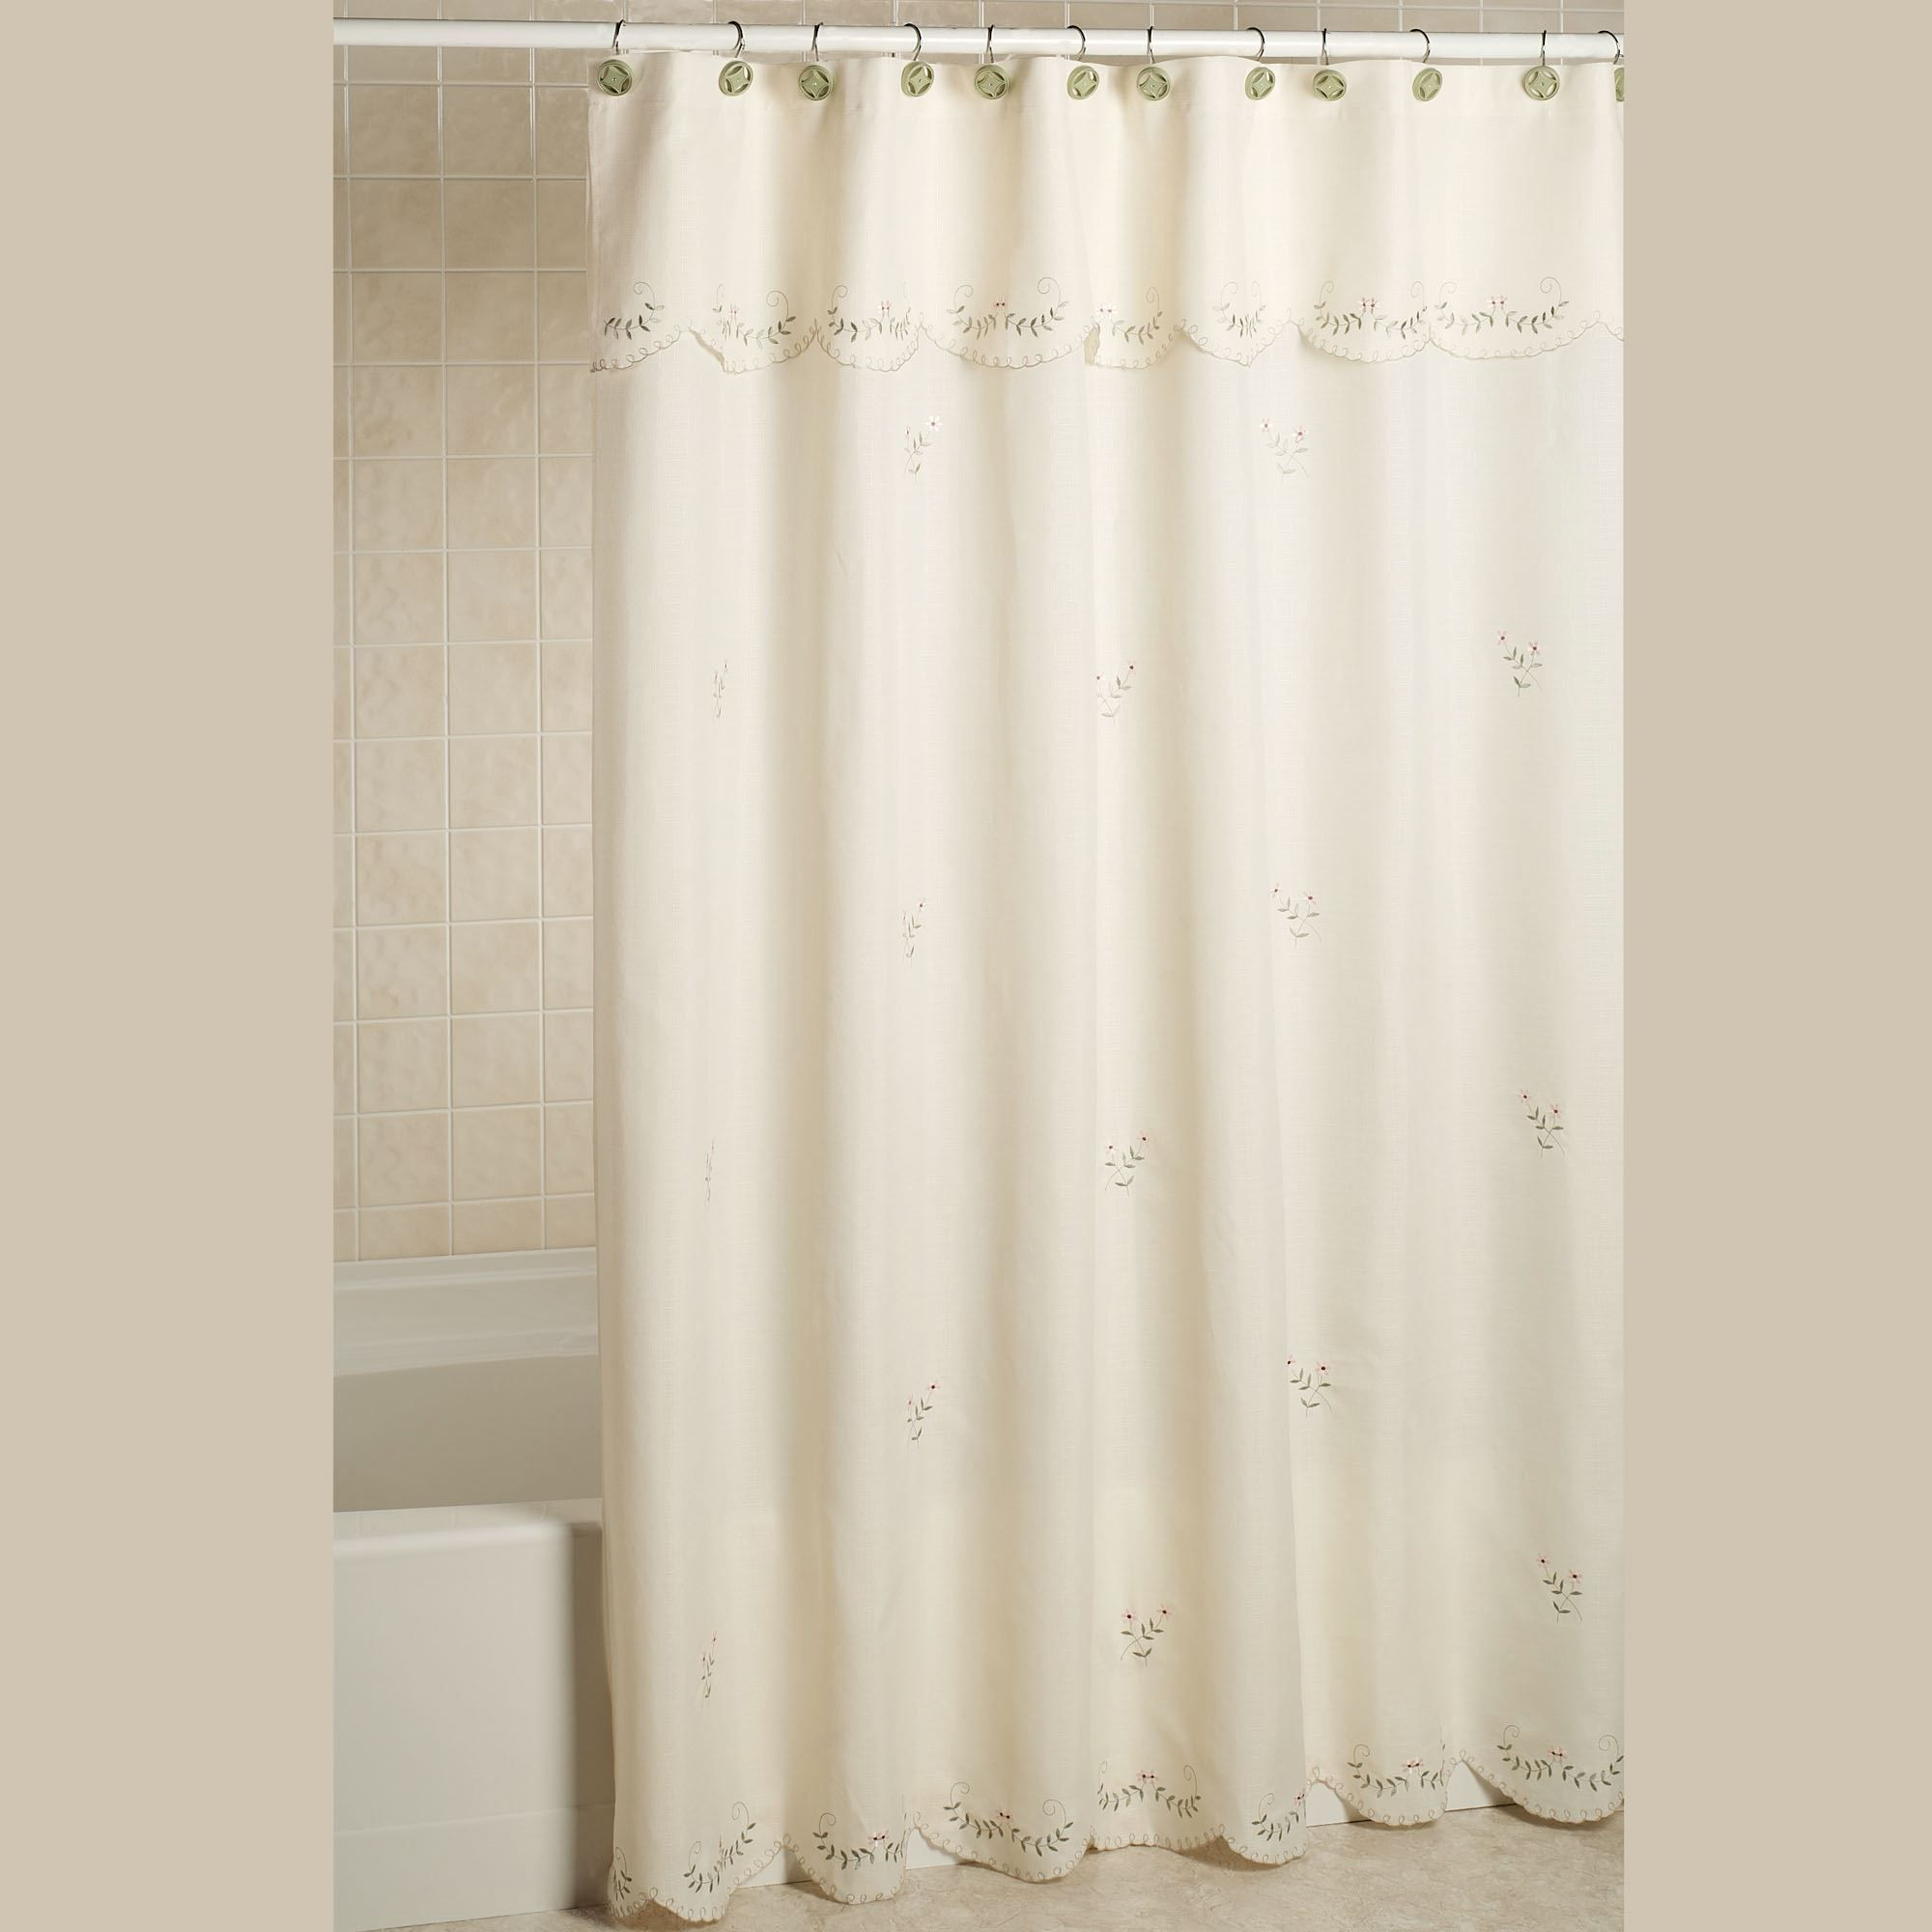 cream colored shower curtain. Choosing The Best Shower Curtain  Check It Out ideas